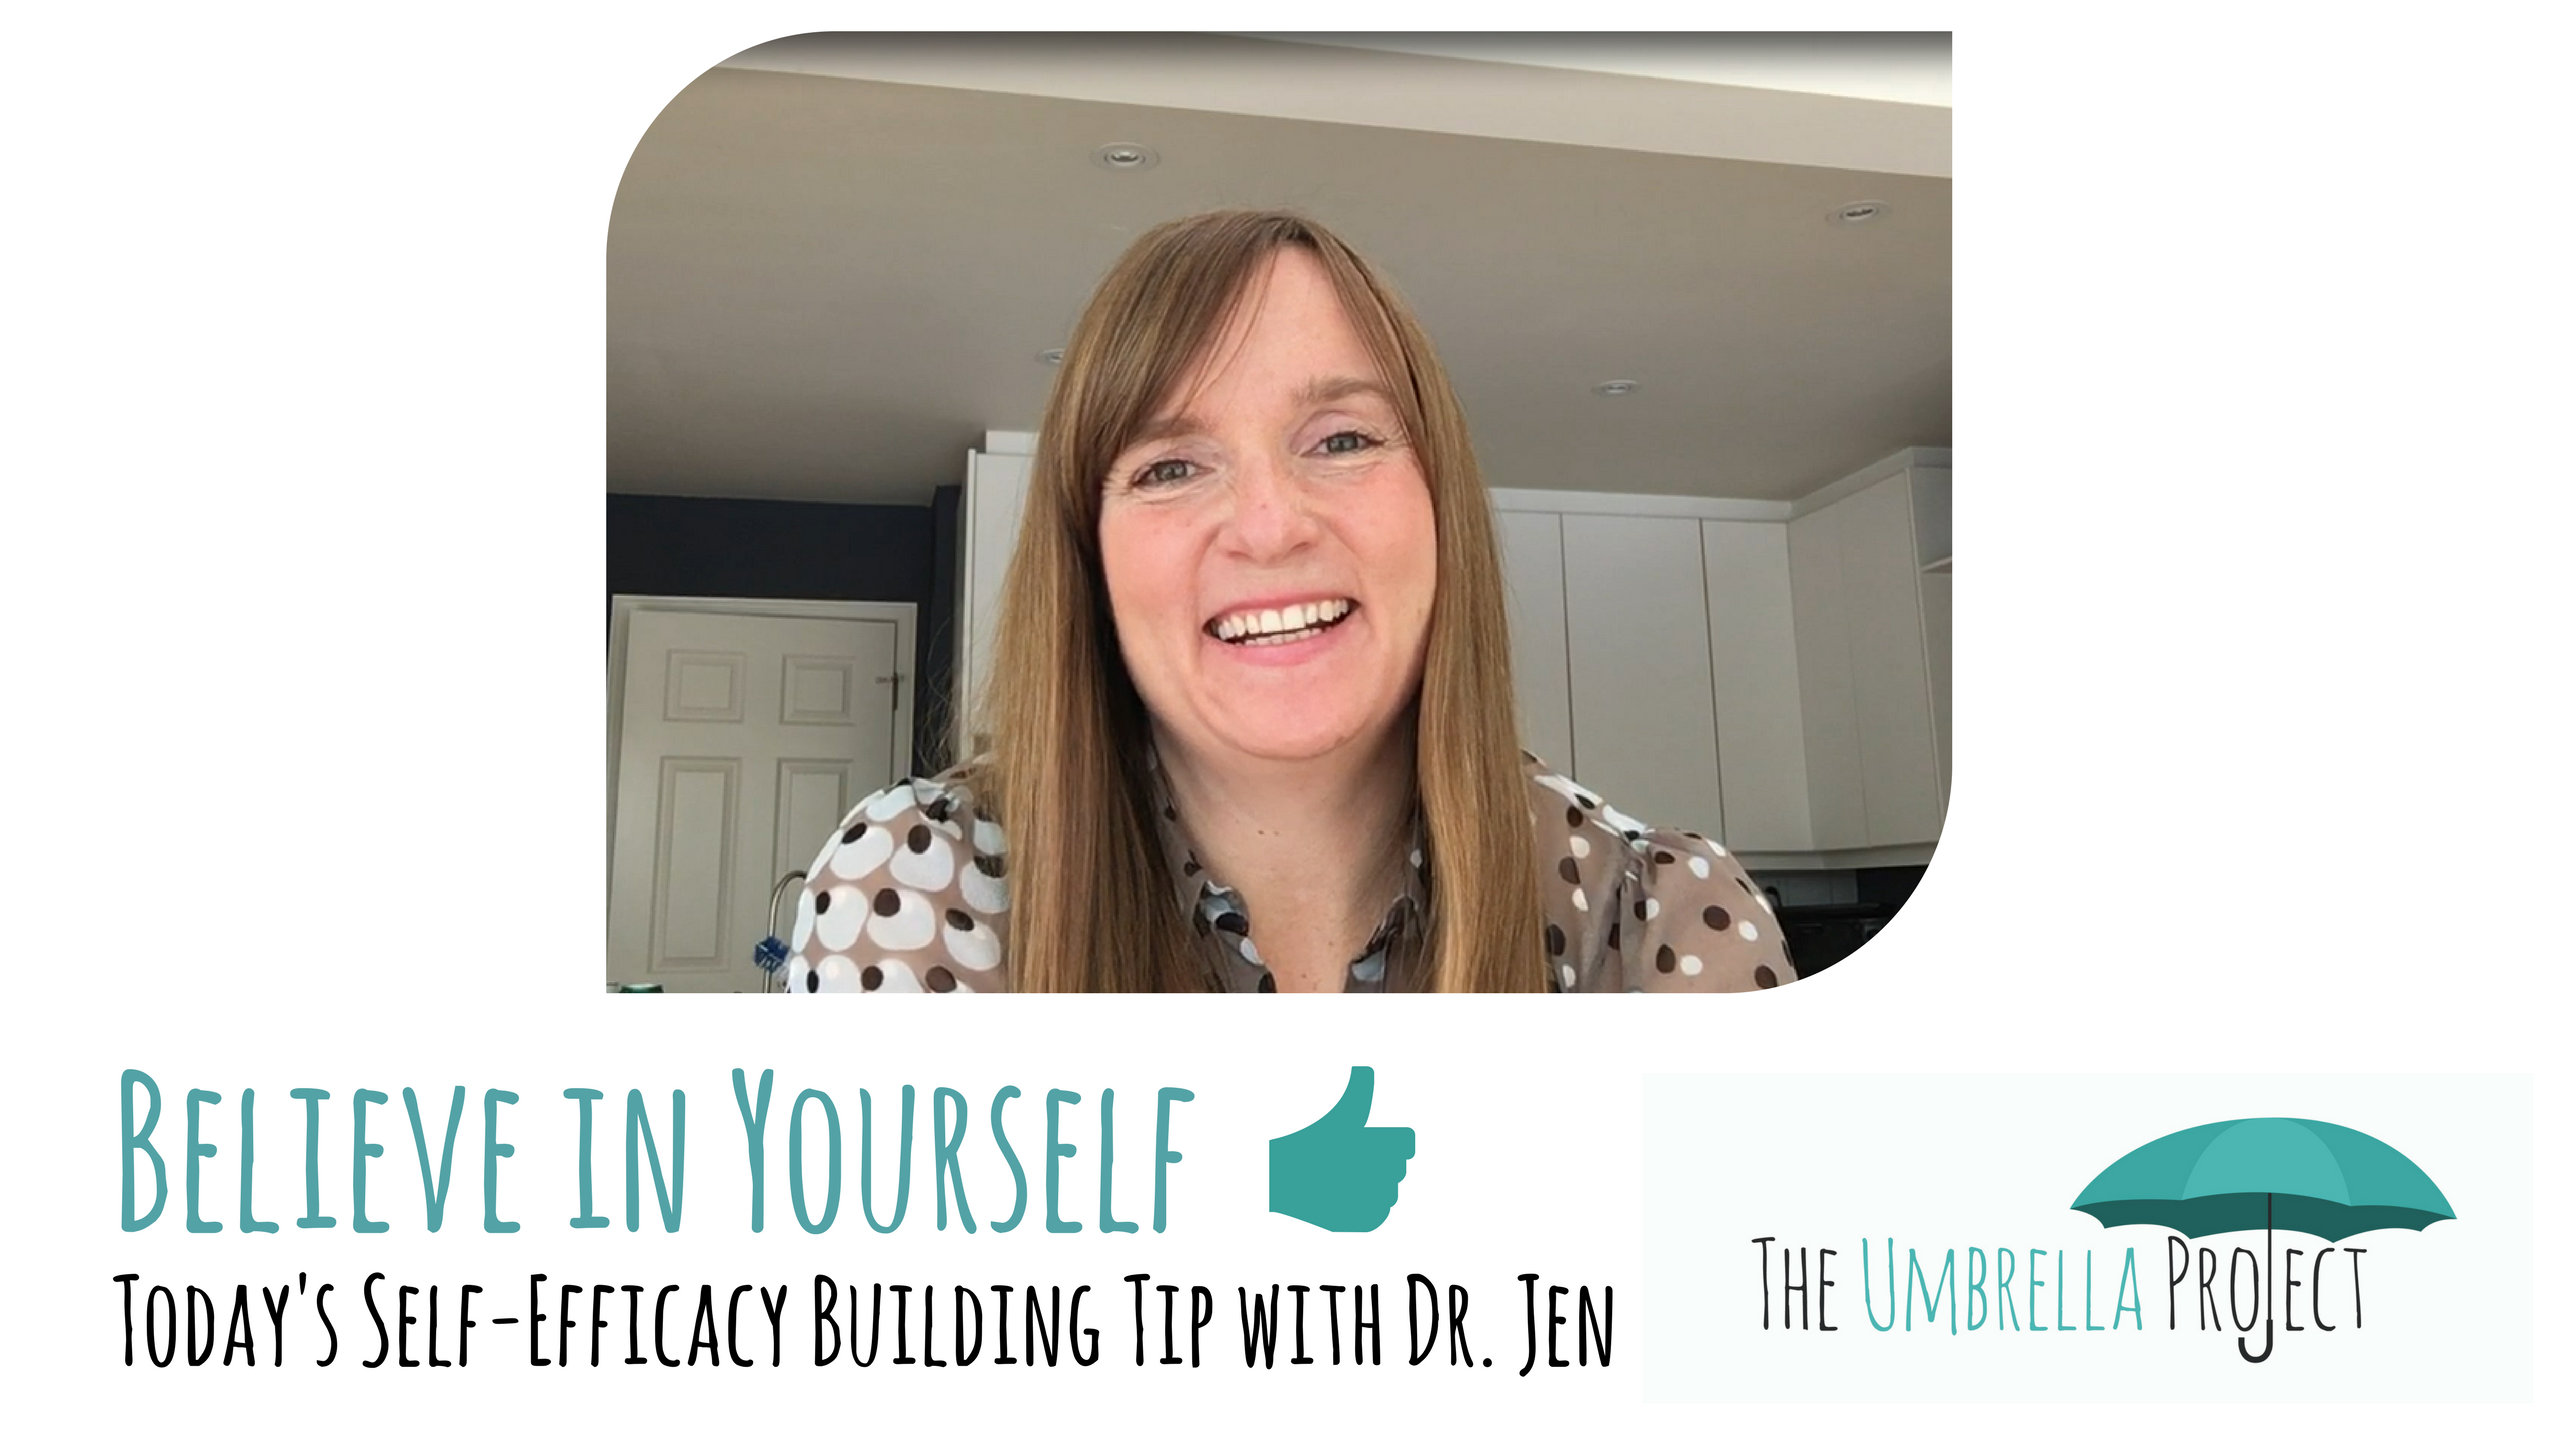 Believe in Yourself: Today's Self-Efficacy Building Tip with Dr. Jen